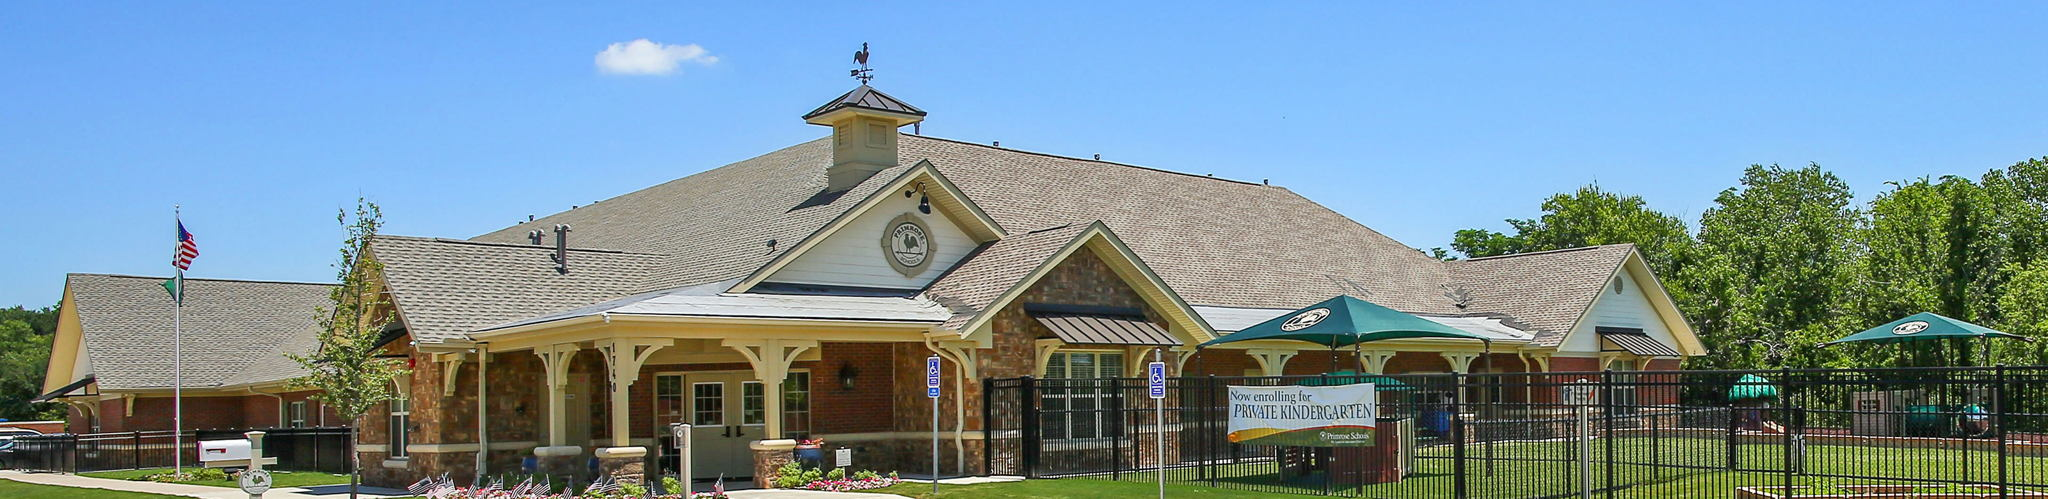 Exterior of a Primrose School of South Plano